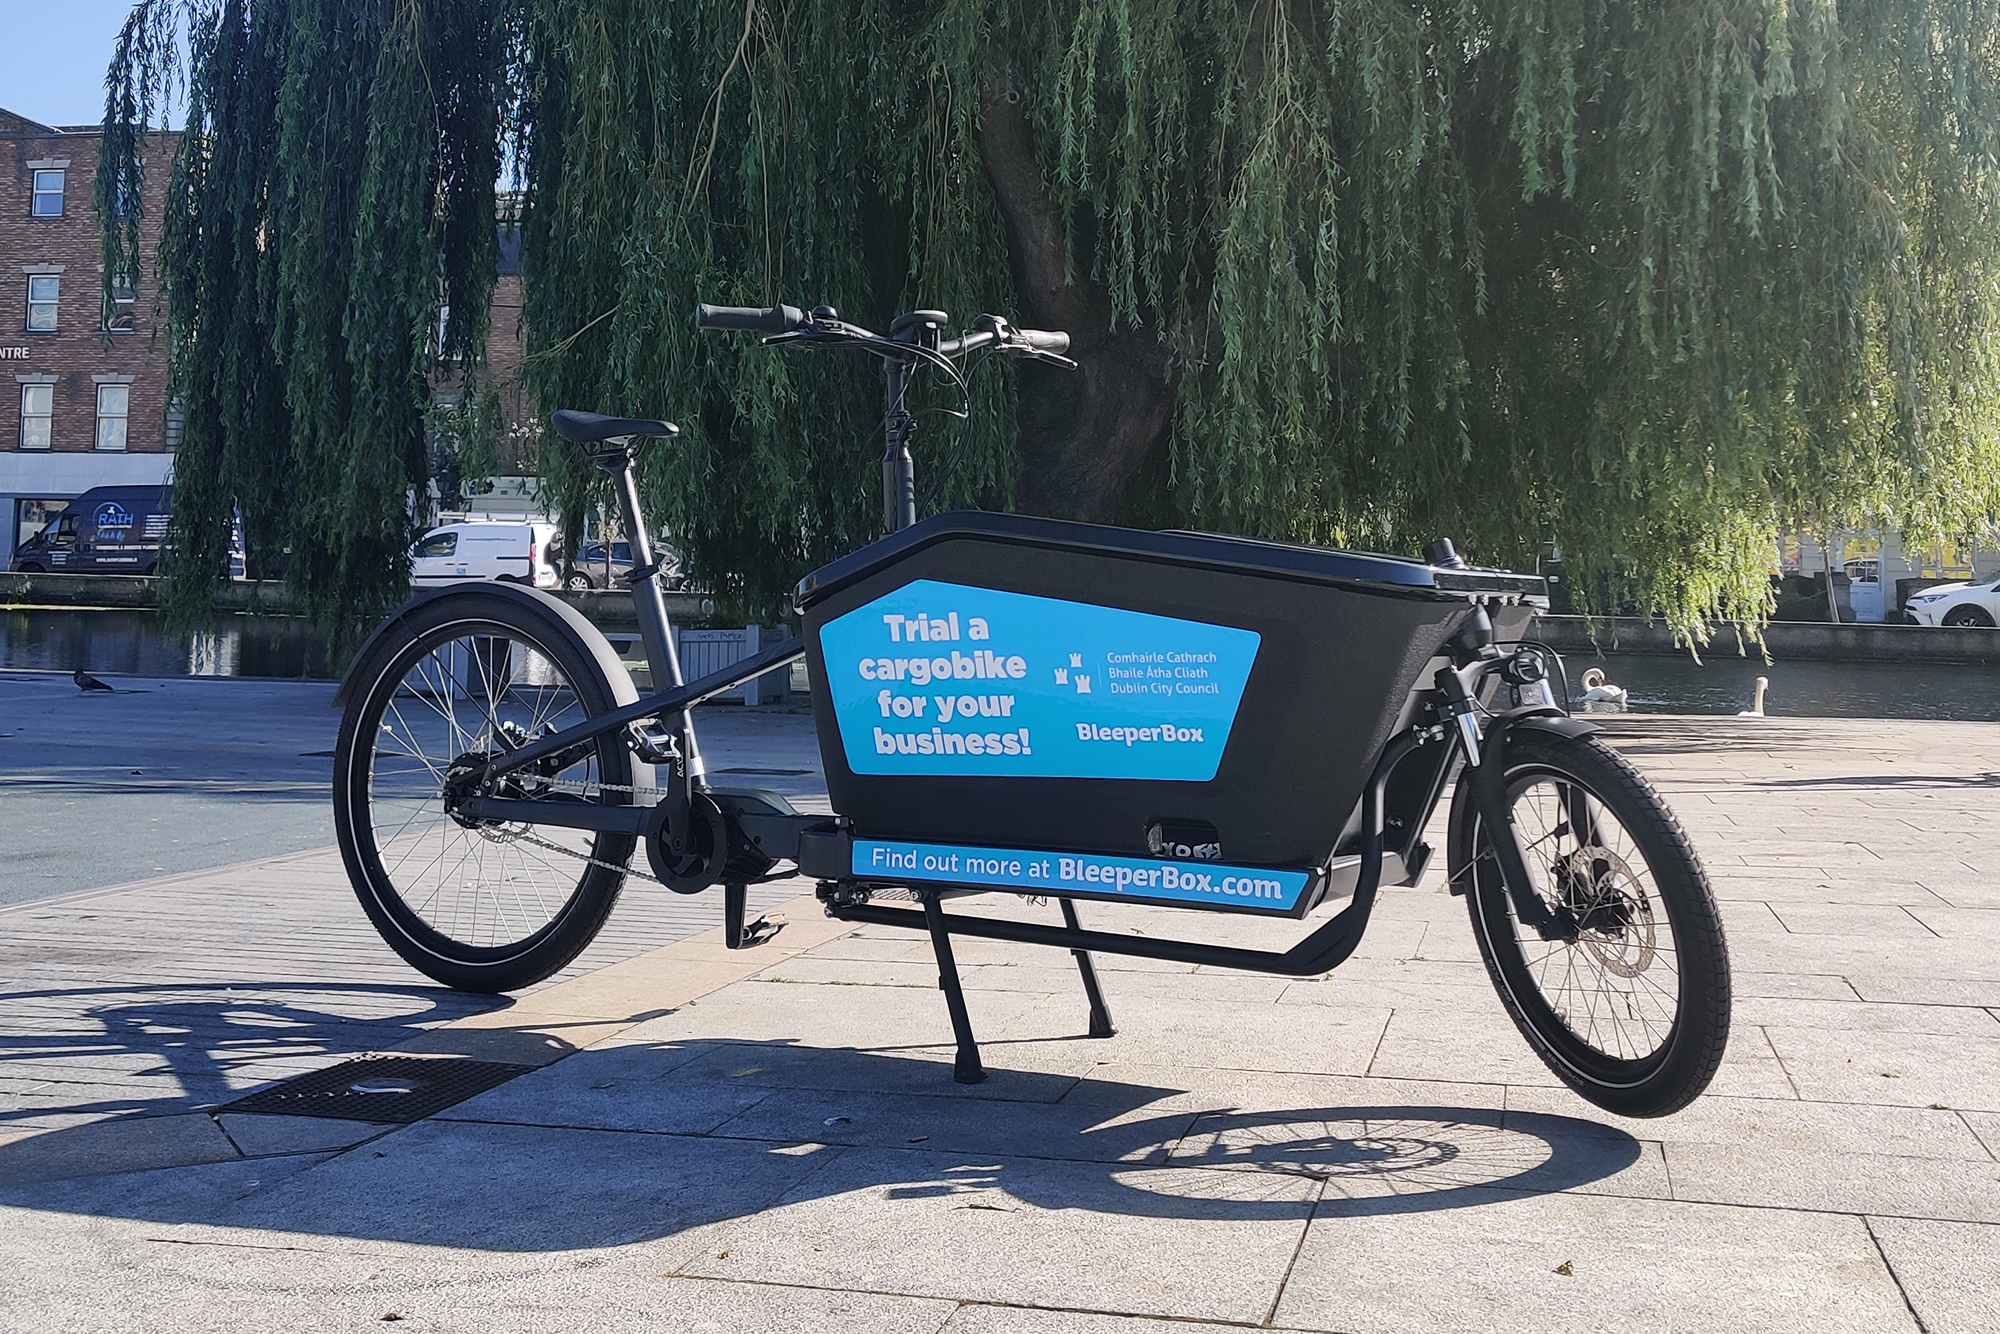 A BleeperBox cargobike which will be used in the Dublin City Council pilot scheme is pictured parked in Portobello Square in Dublin 2. These cargobikes will be hired to local businesses by bike sharing operator Bleeper.